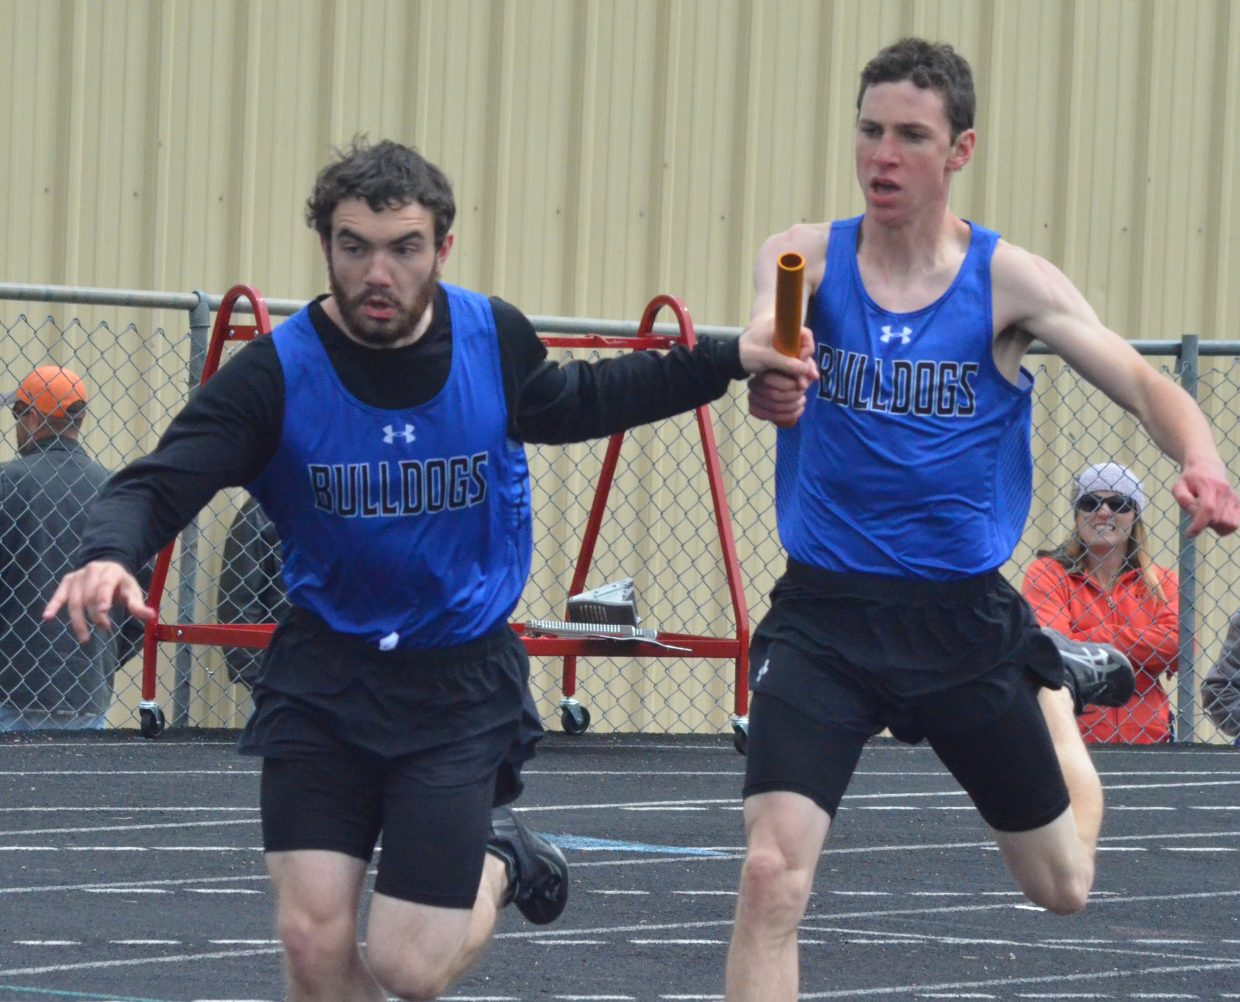 Moffat County High School's Isaac Trevenen, left, and Grant Wade complete a hand-off in the boys 4x200-meter relay at Friday's Clint Wells Invitational in Craig.